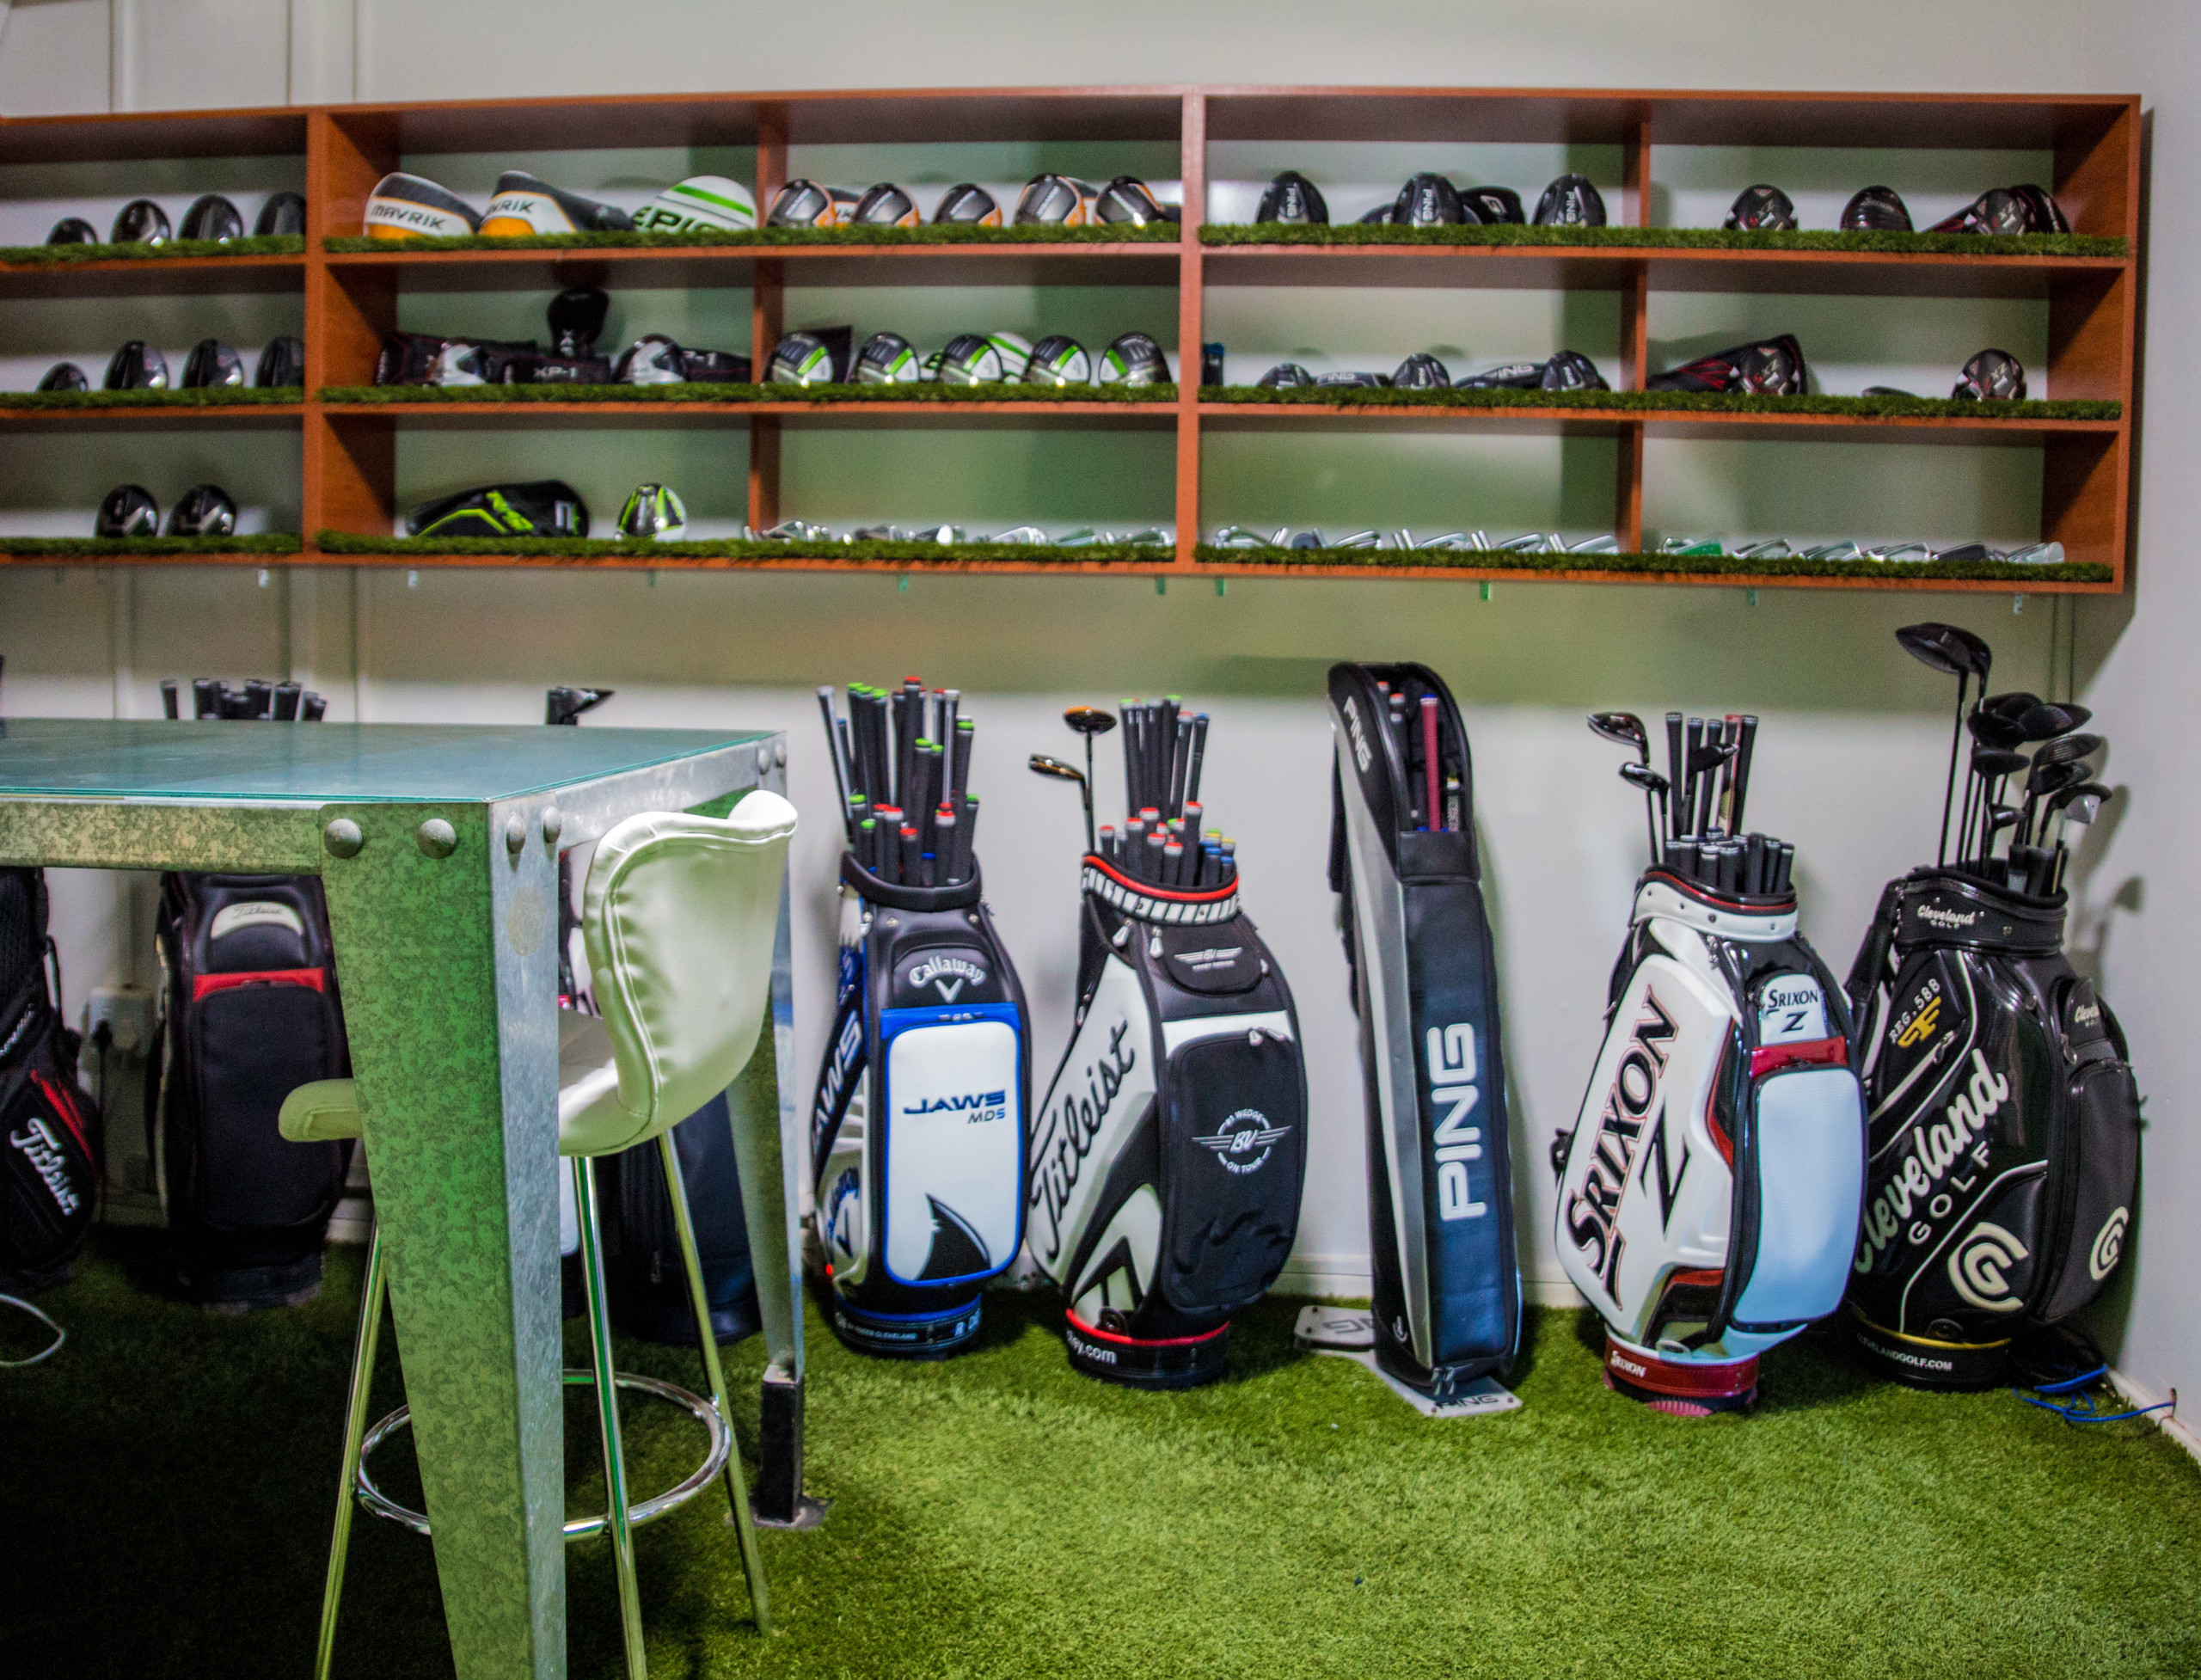 About Golf Concepts